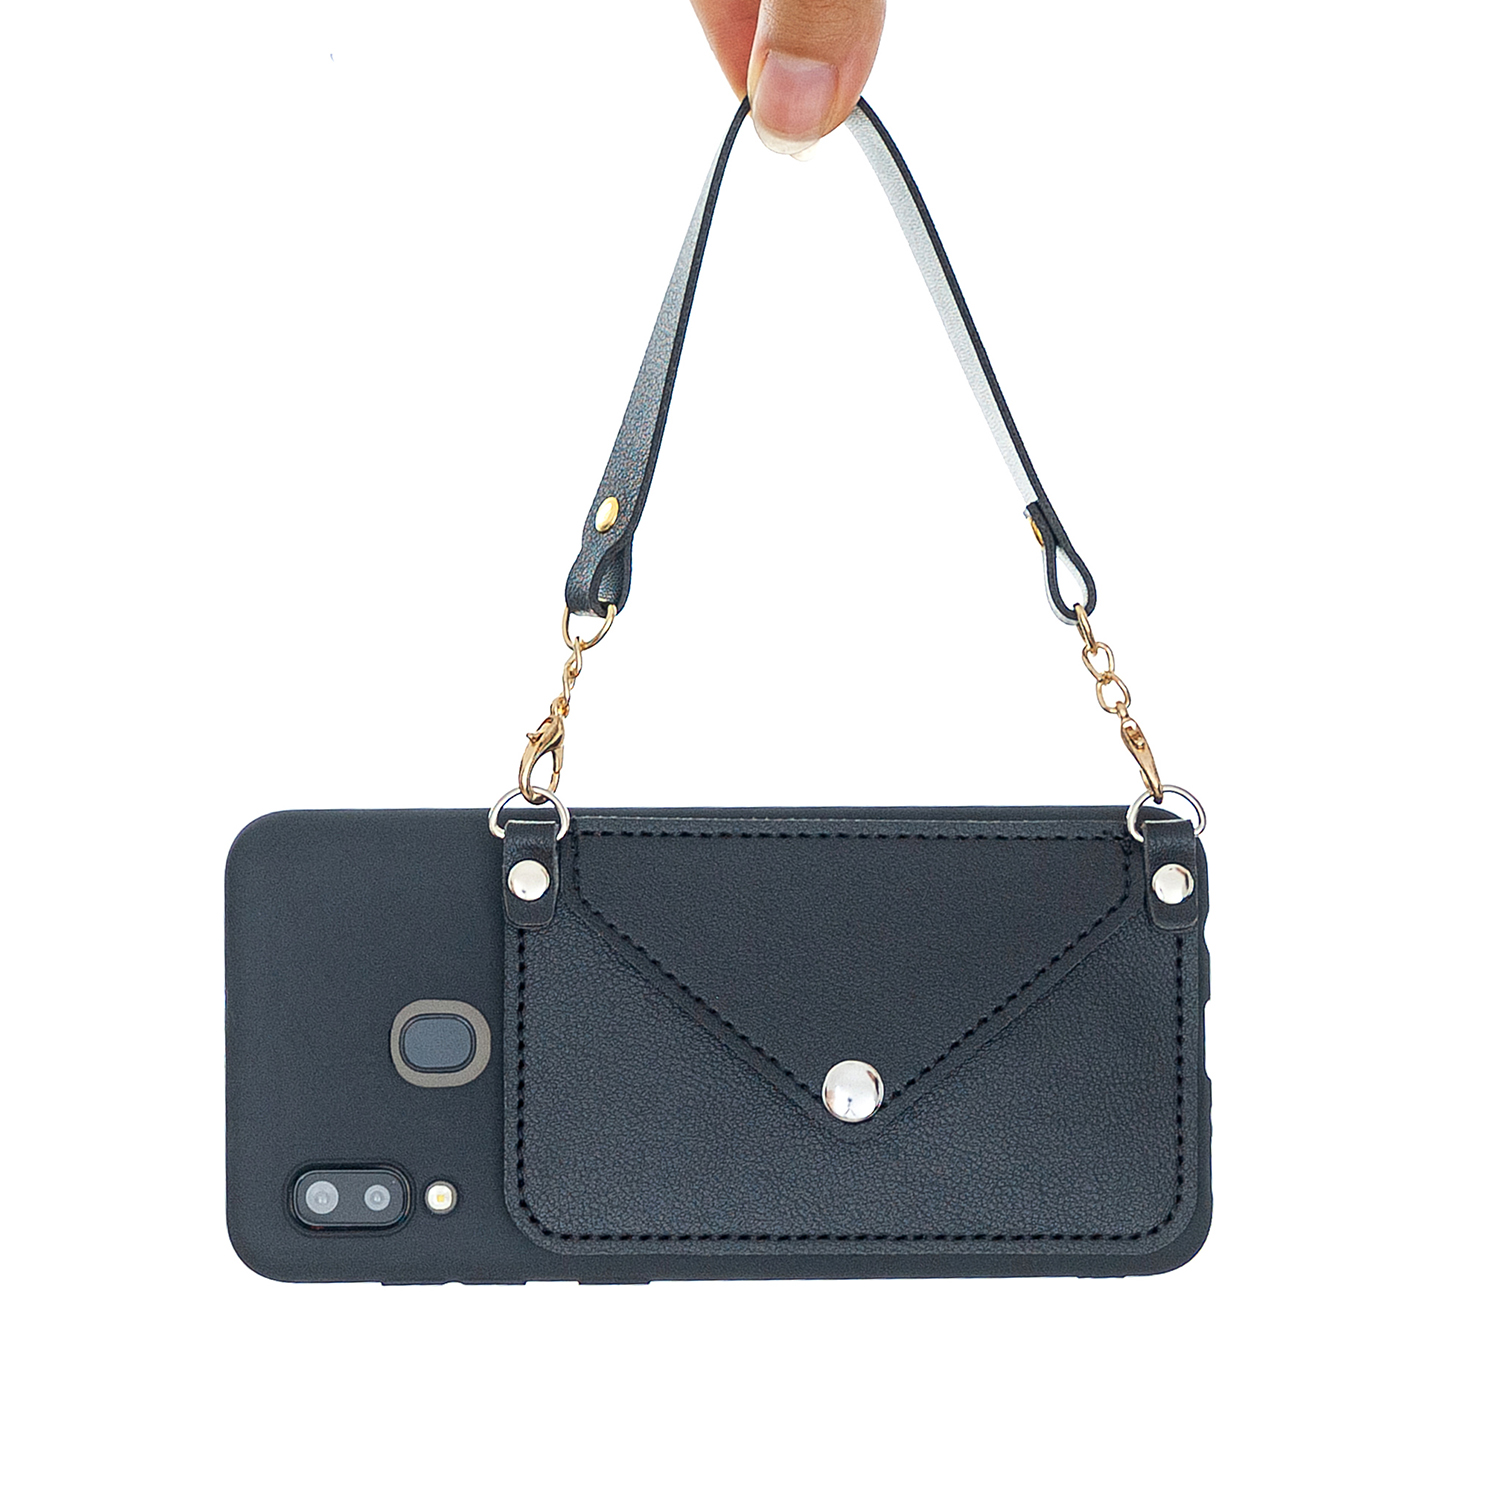 For HUAWEI P20/ P20 Lite/P20 Pro Mobile Phone Cover with Pu Leather Card Holder + Hand Rope + Straddle Rope black